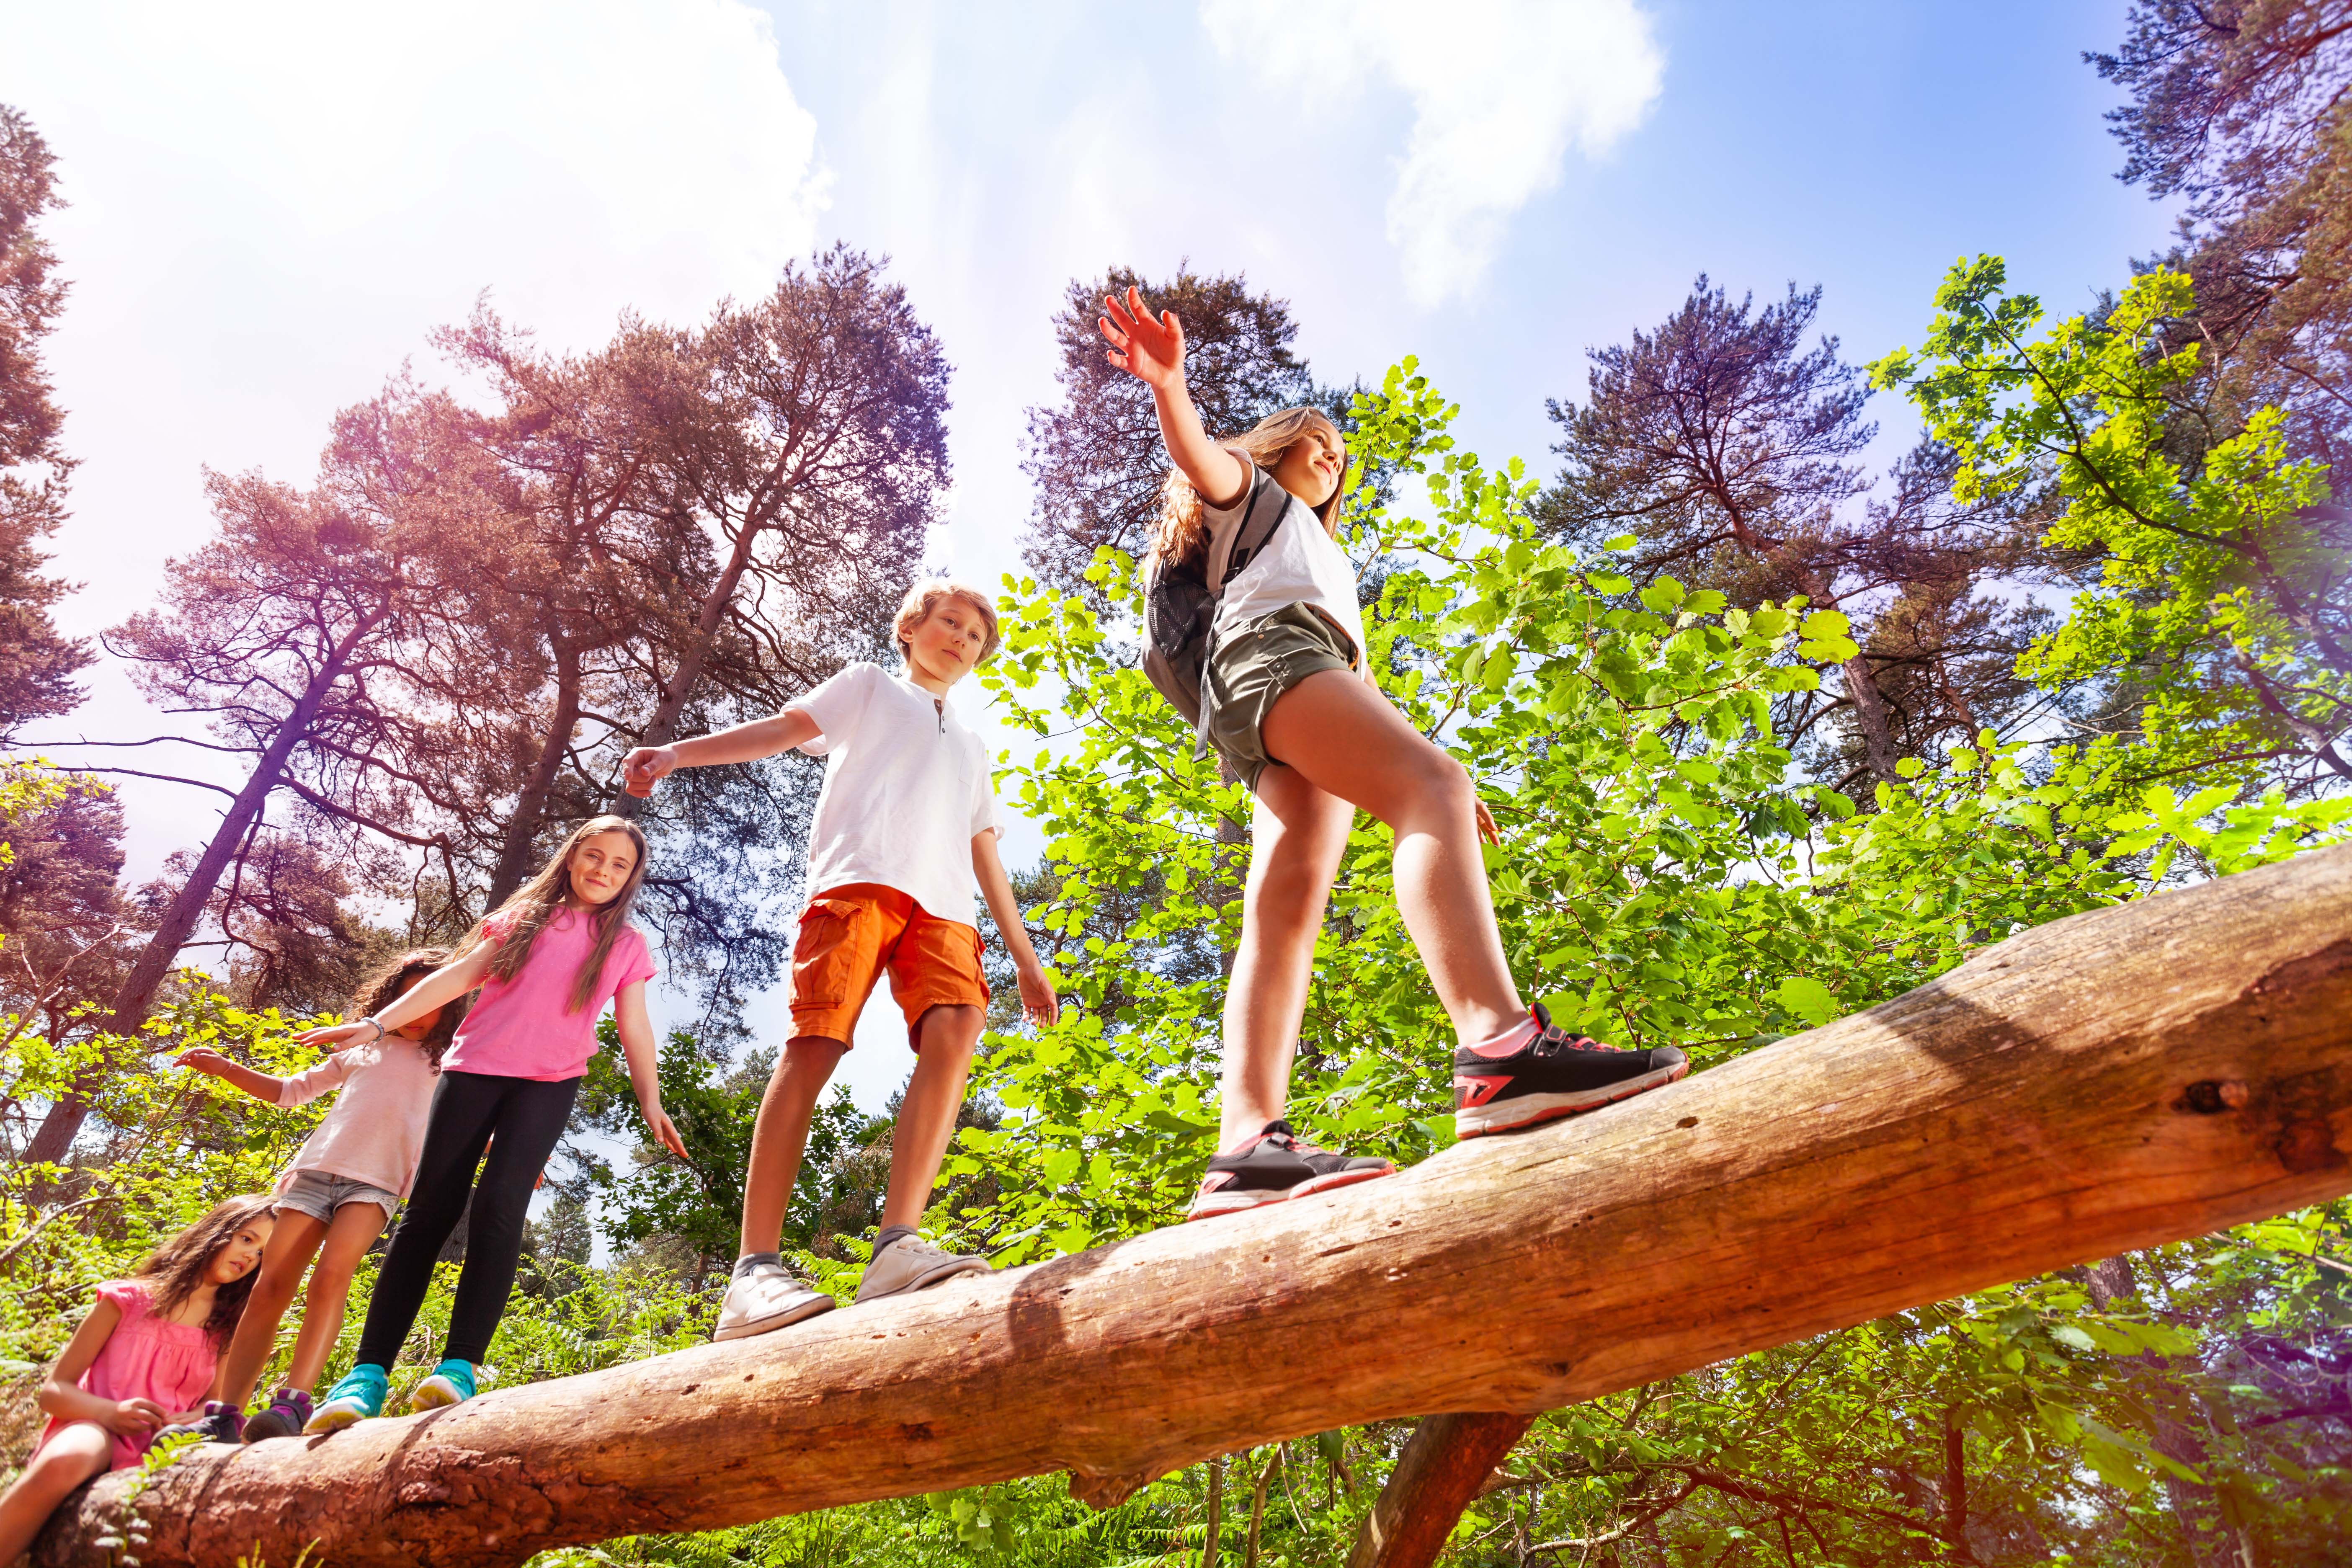 IS THERE STILL VALUE IN CAMPING FOR YOUNG PEOPLE?